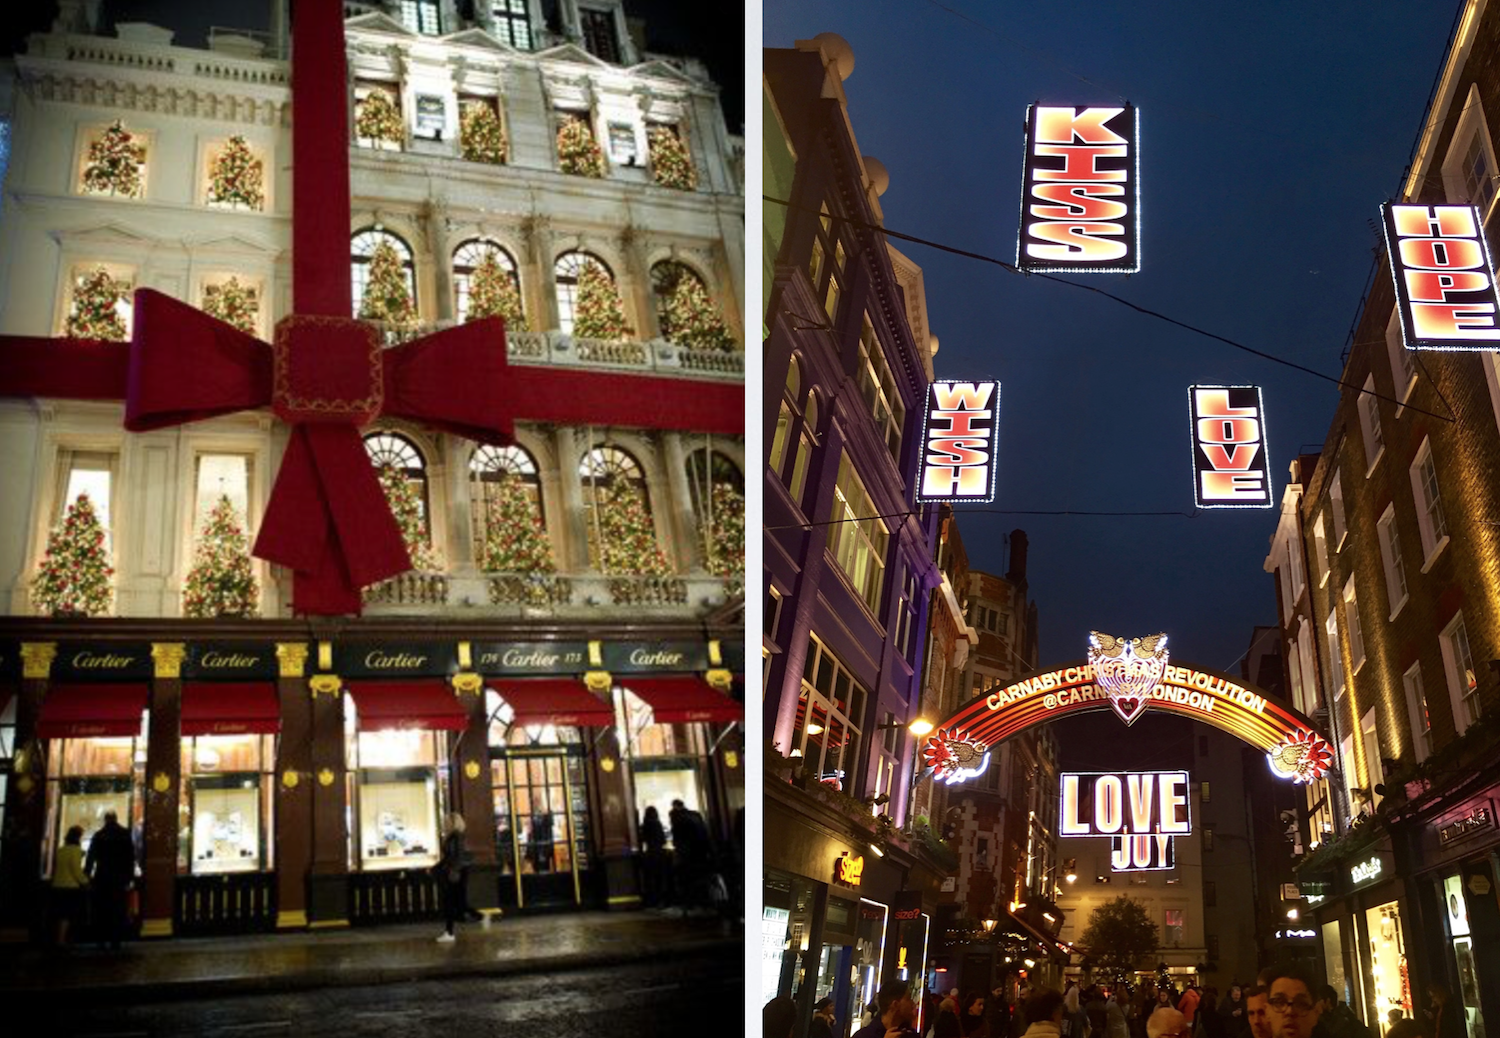 Left: The exterior of Cartier all wrapped up for Christmas. Right: Carnaby Street